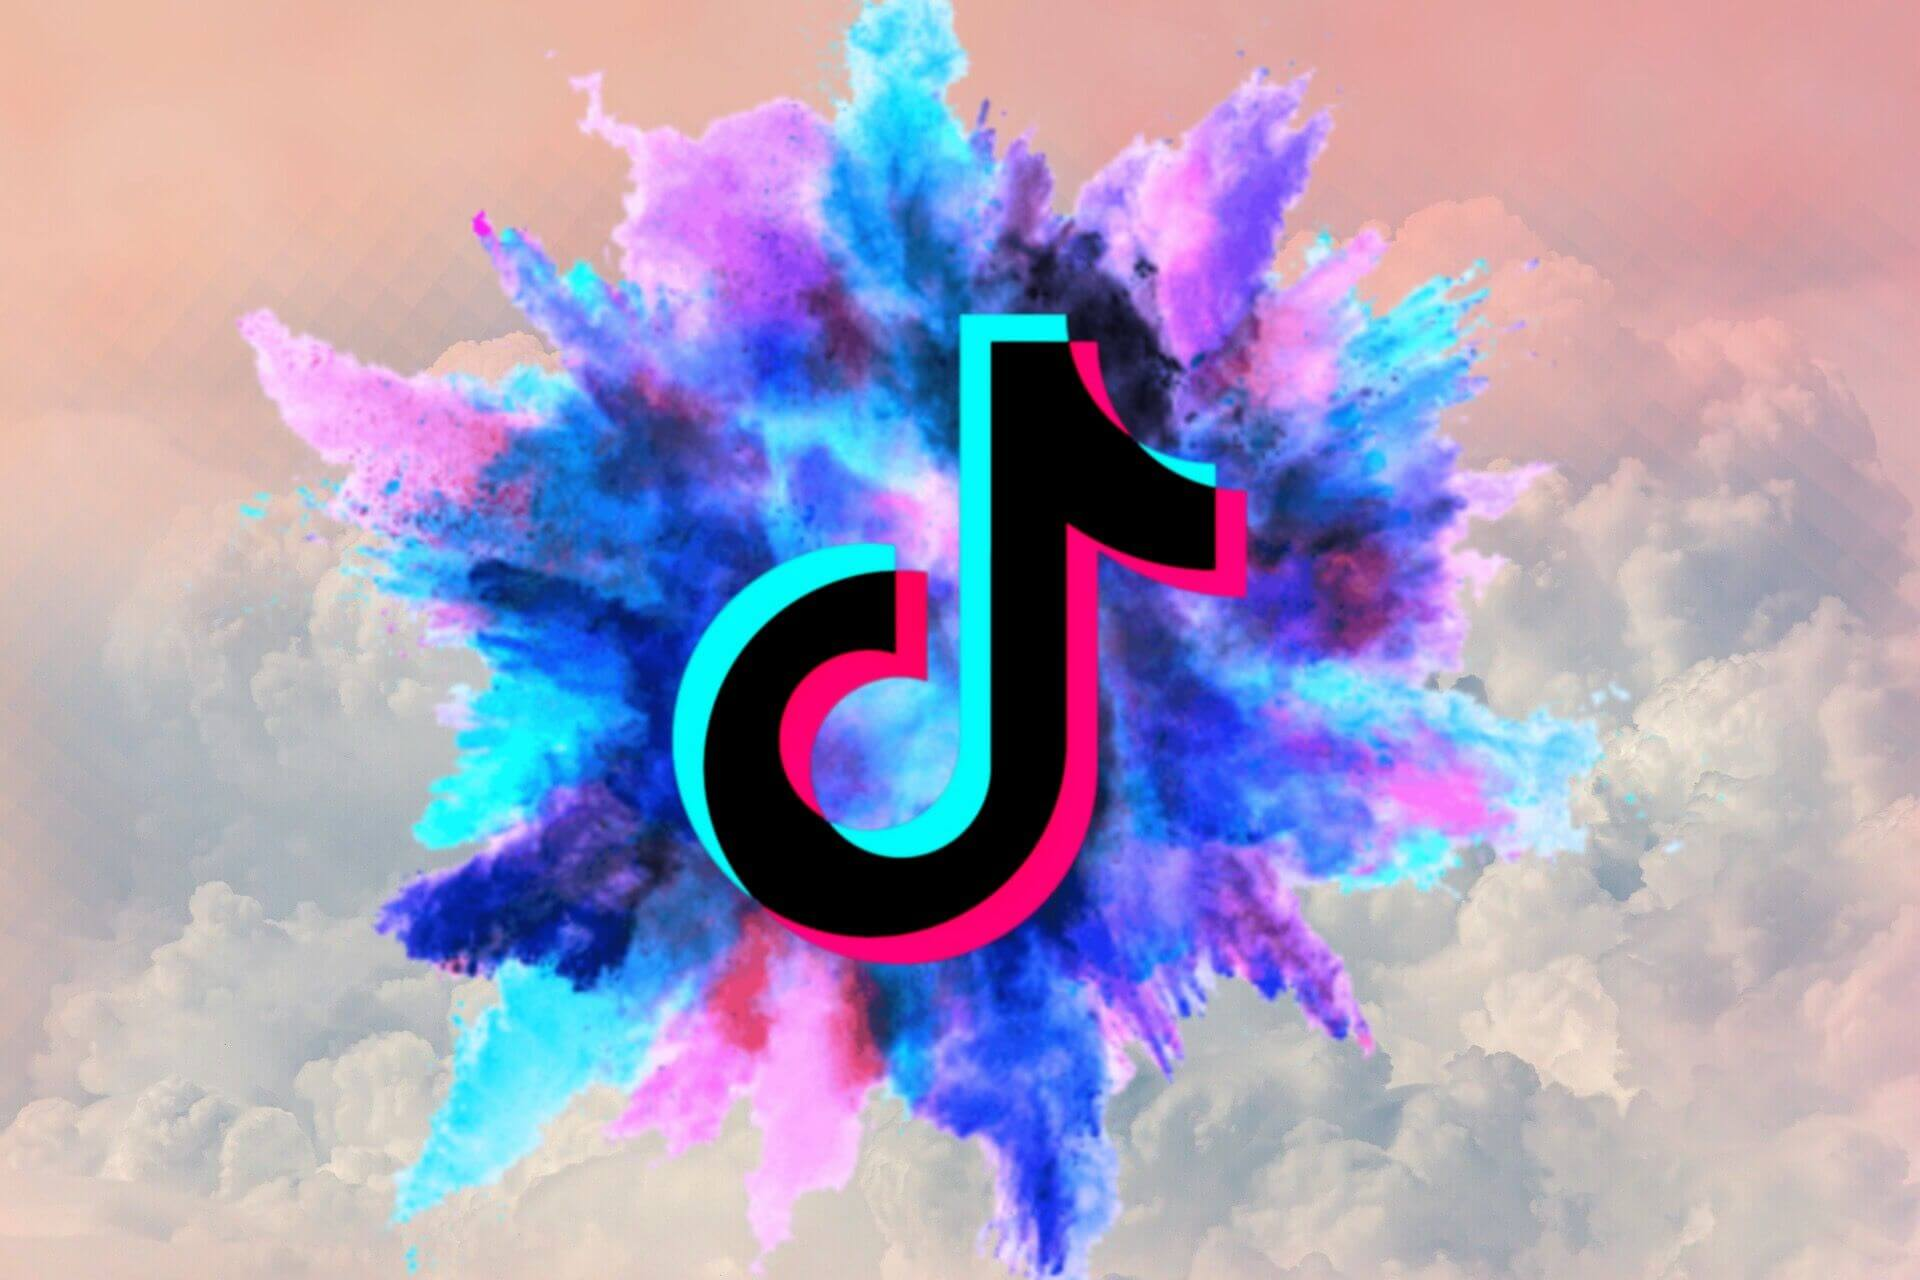 How To Change Tiktok Profile Picture Techinweb This list contains the top 50 accounts with the largest number of followers on the social media platform tiktok, which was previously merged with musical.ly. how to change tiktok profile picture